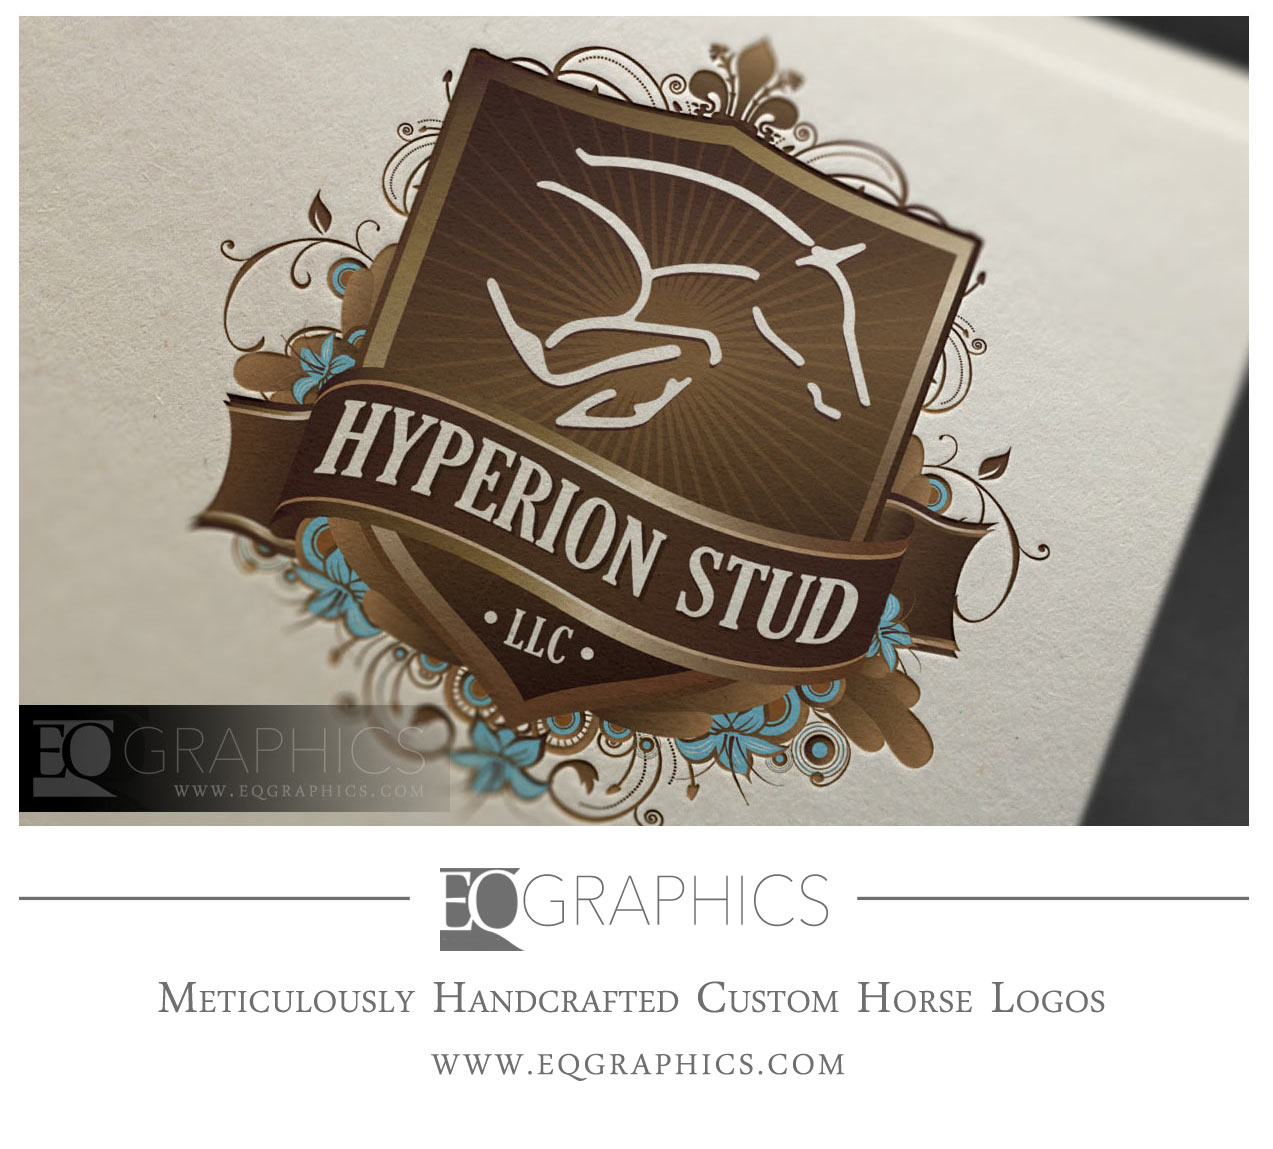 Hyperion Stud Jumping Horse Stallion Farm Showjumper Logo Design by EQ Graphics Custom Logos